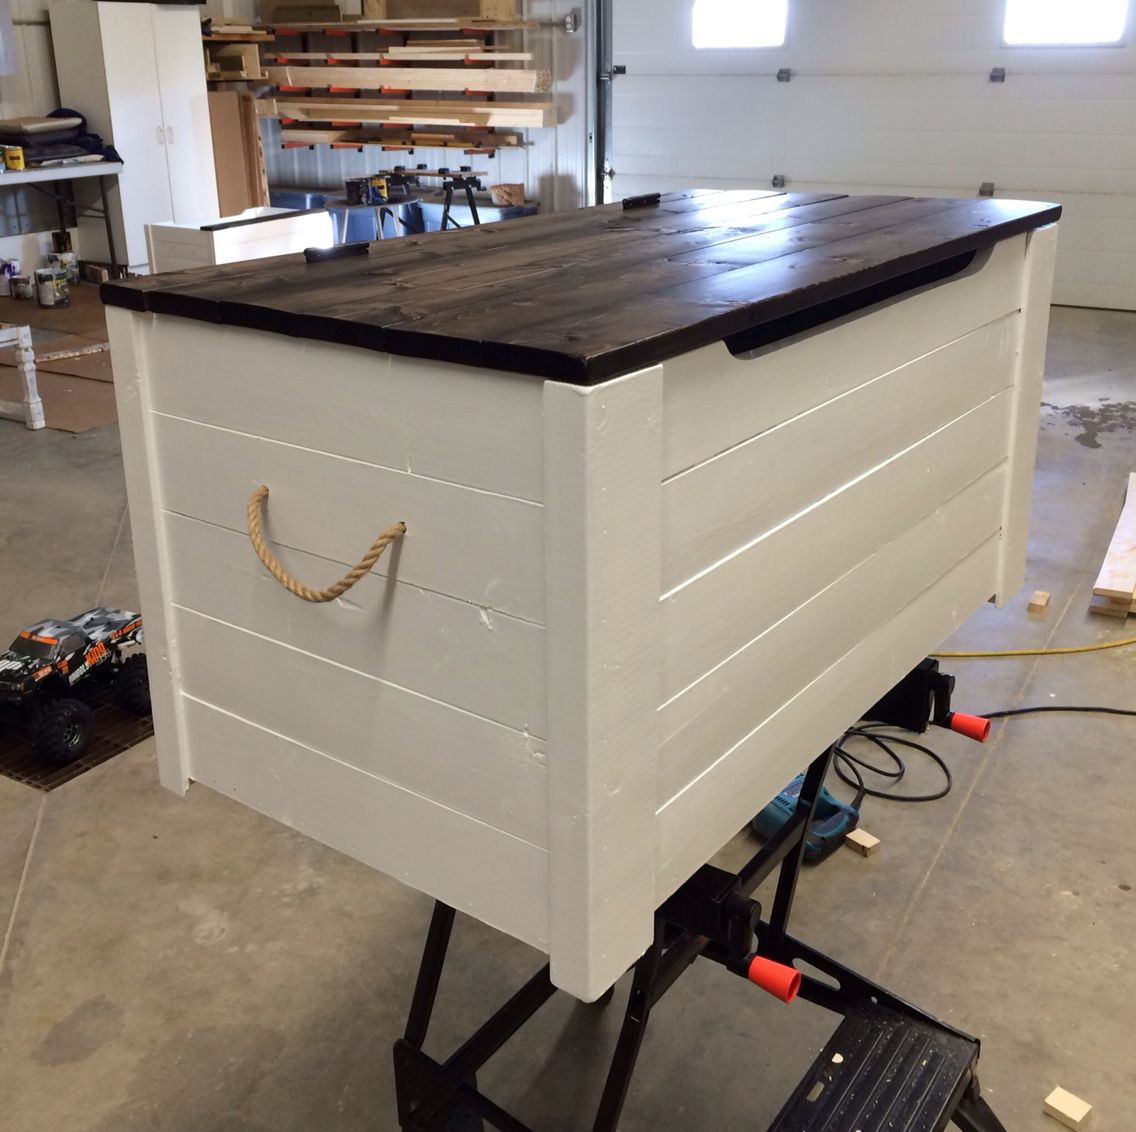 So versatile hope chest toy box coffee table or seat